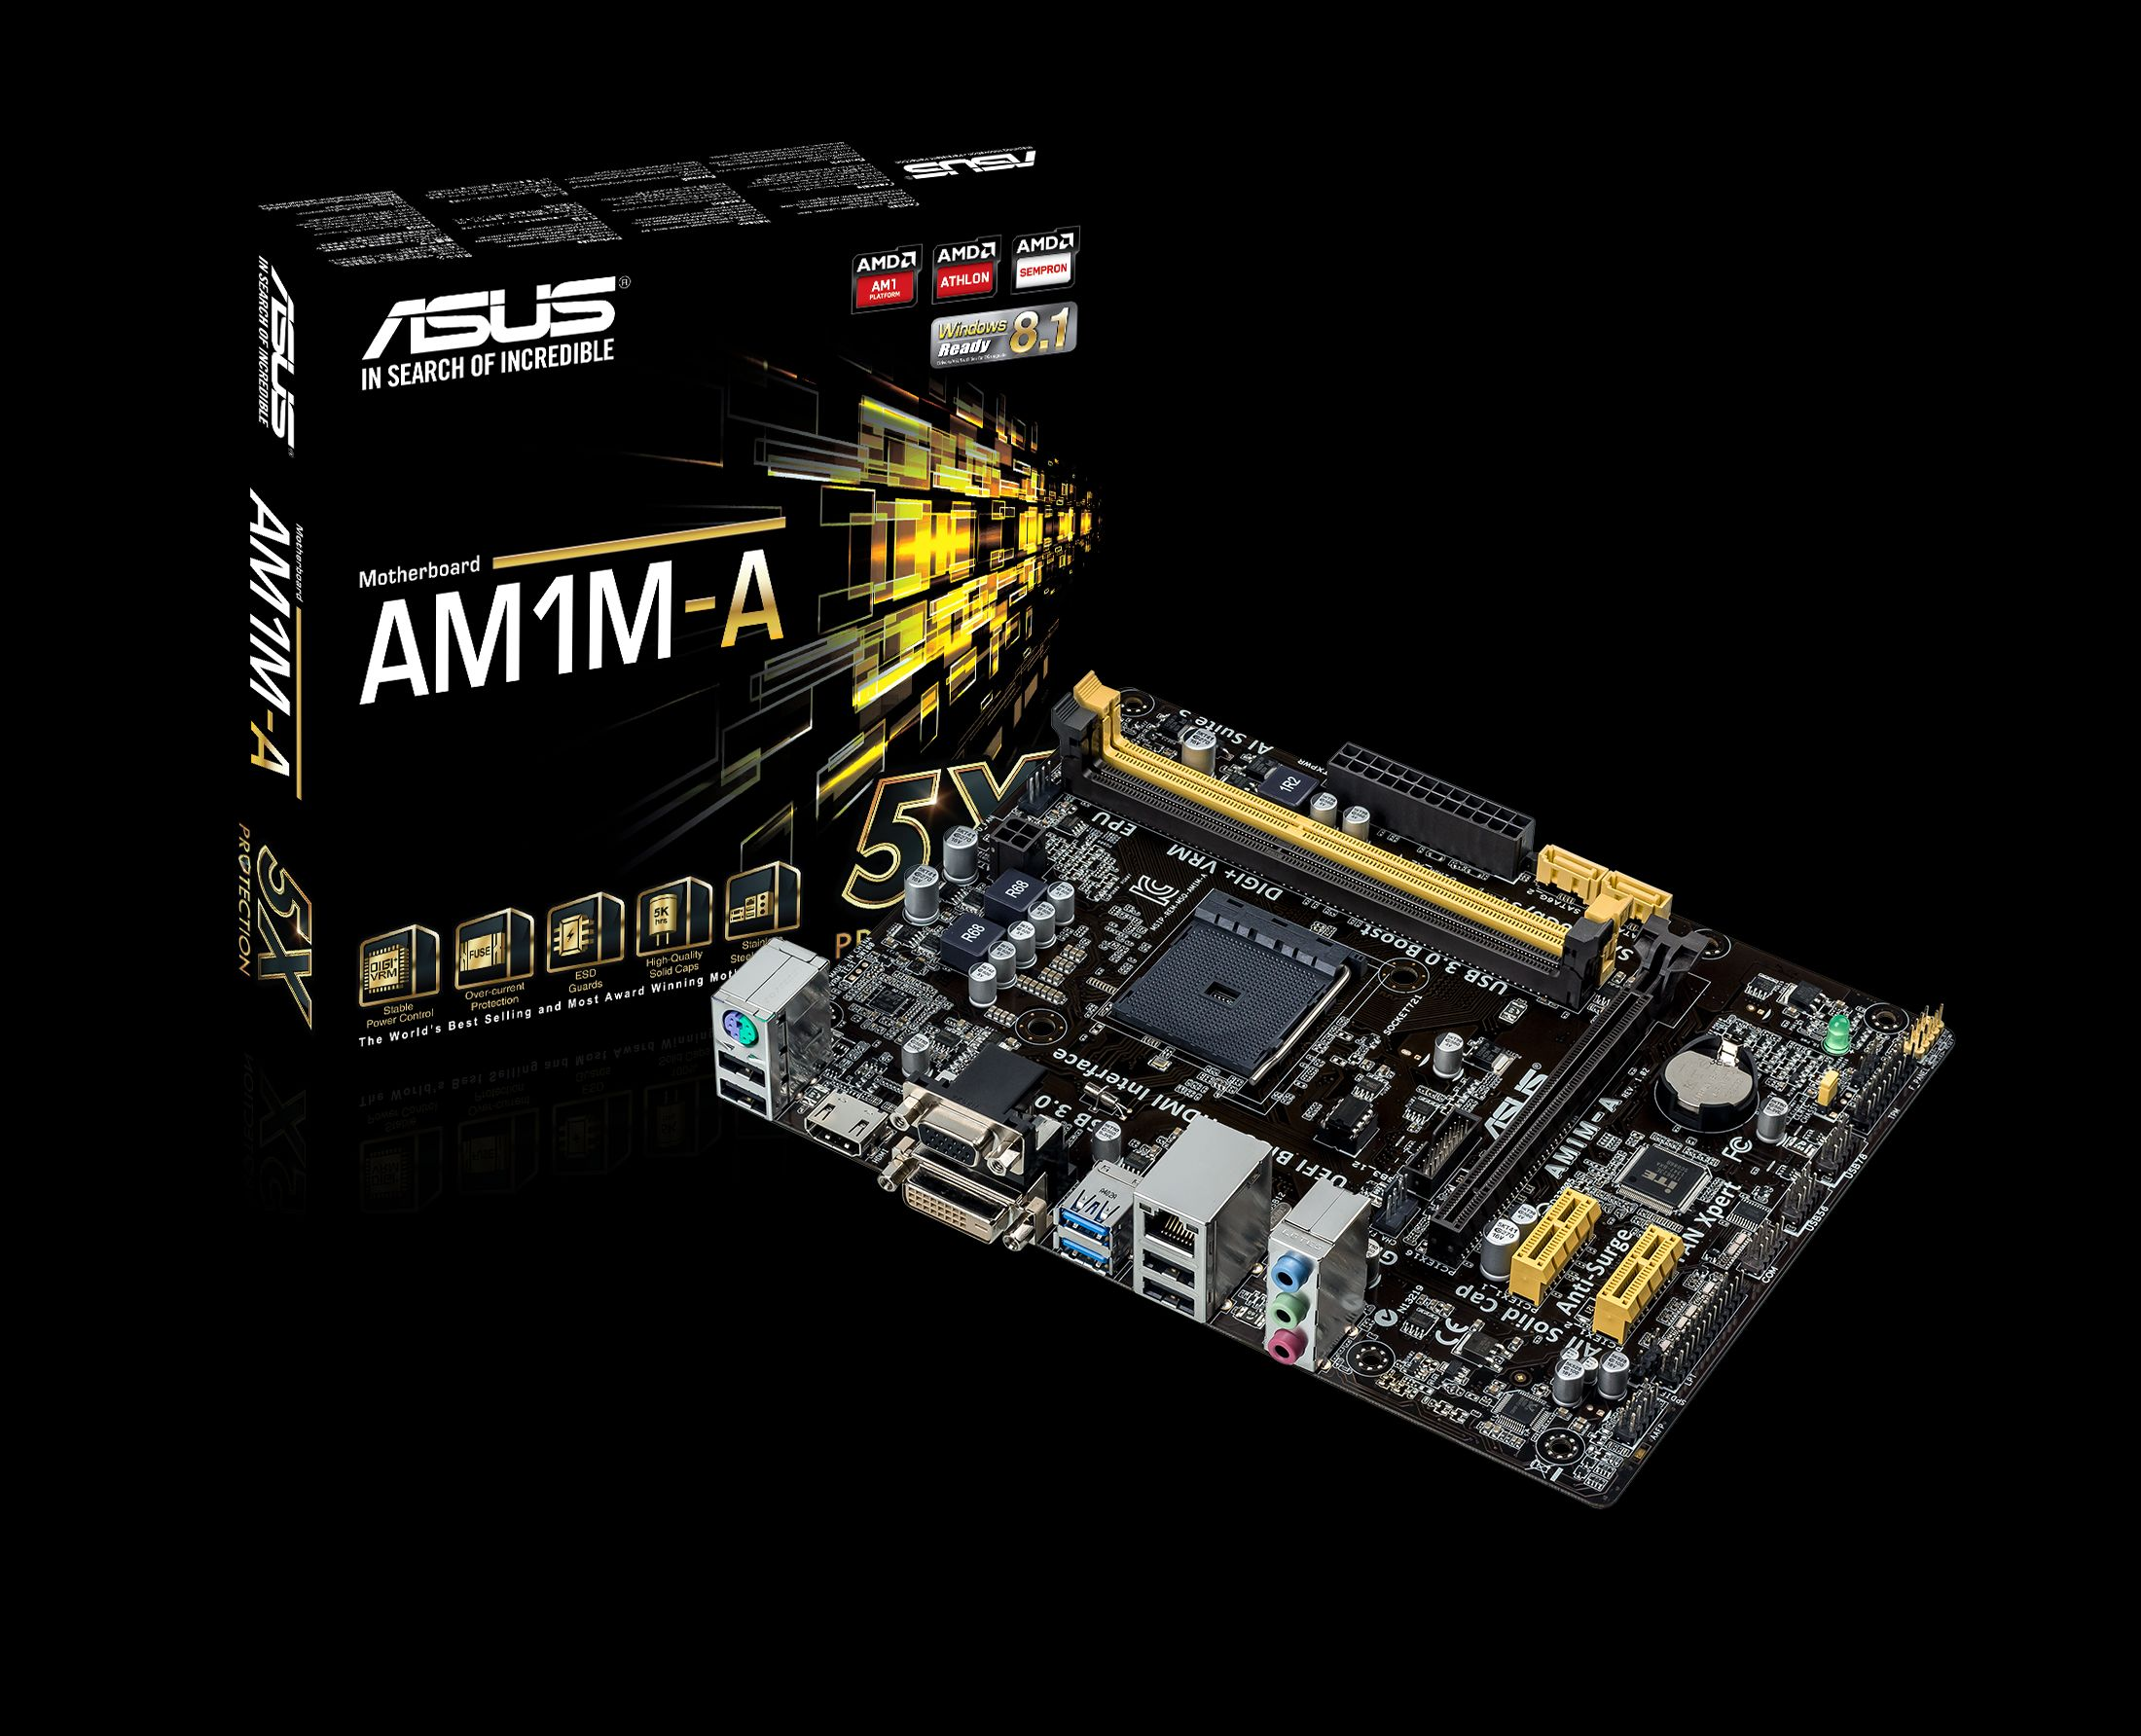 ASUS launches AM1M-A Motherboard for AMD Kabini APUs